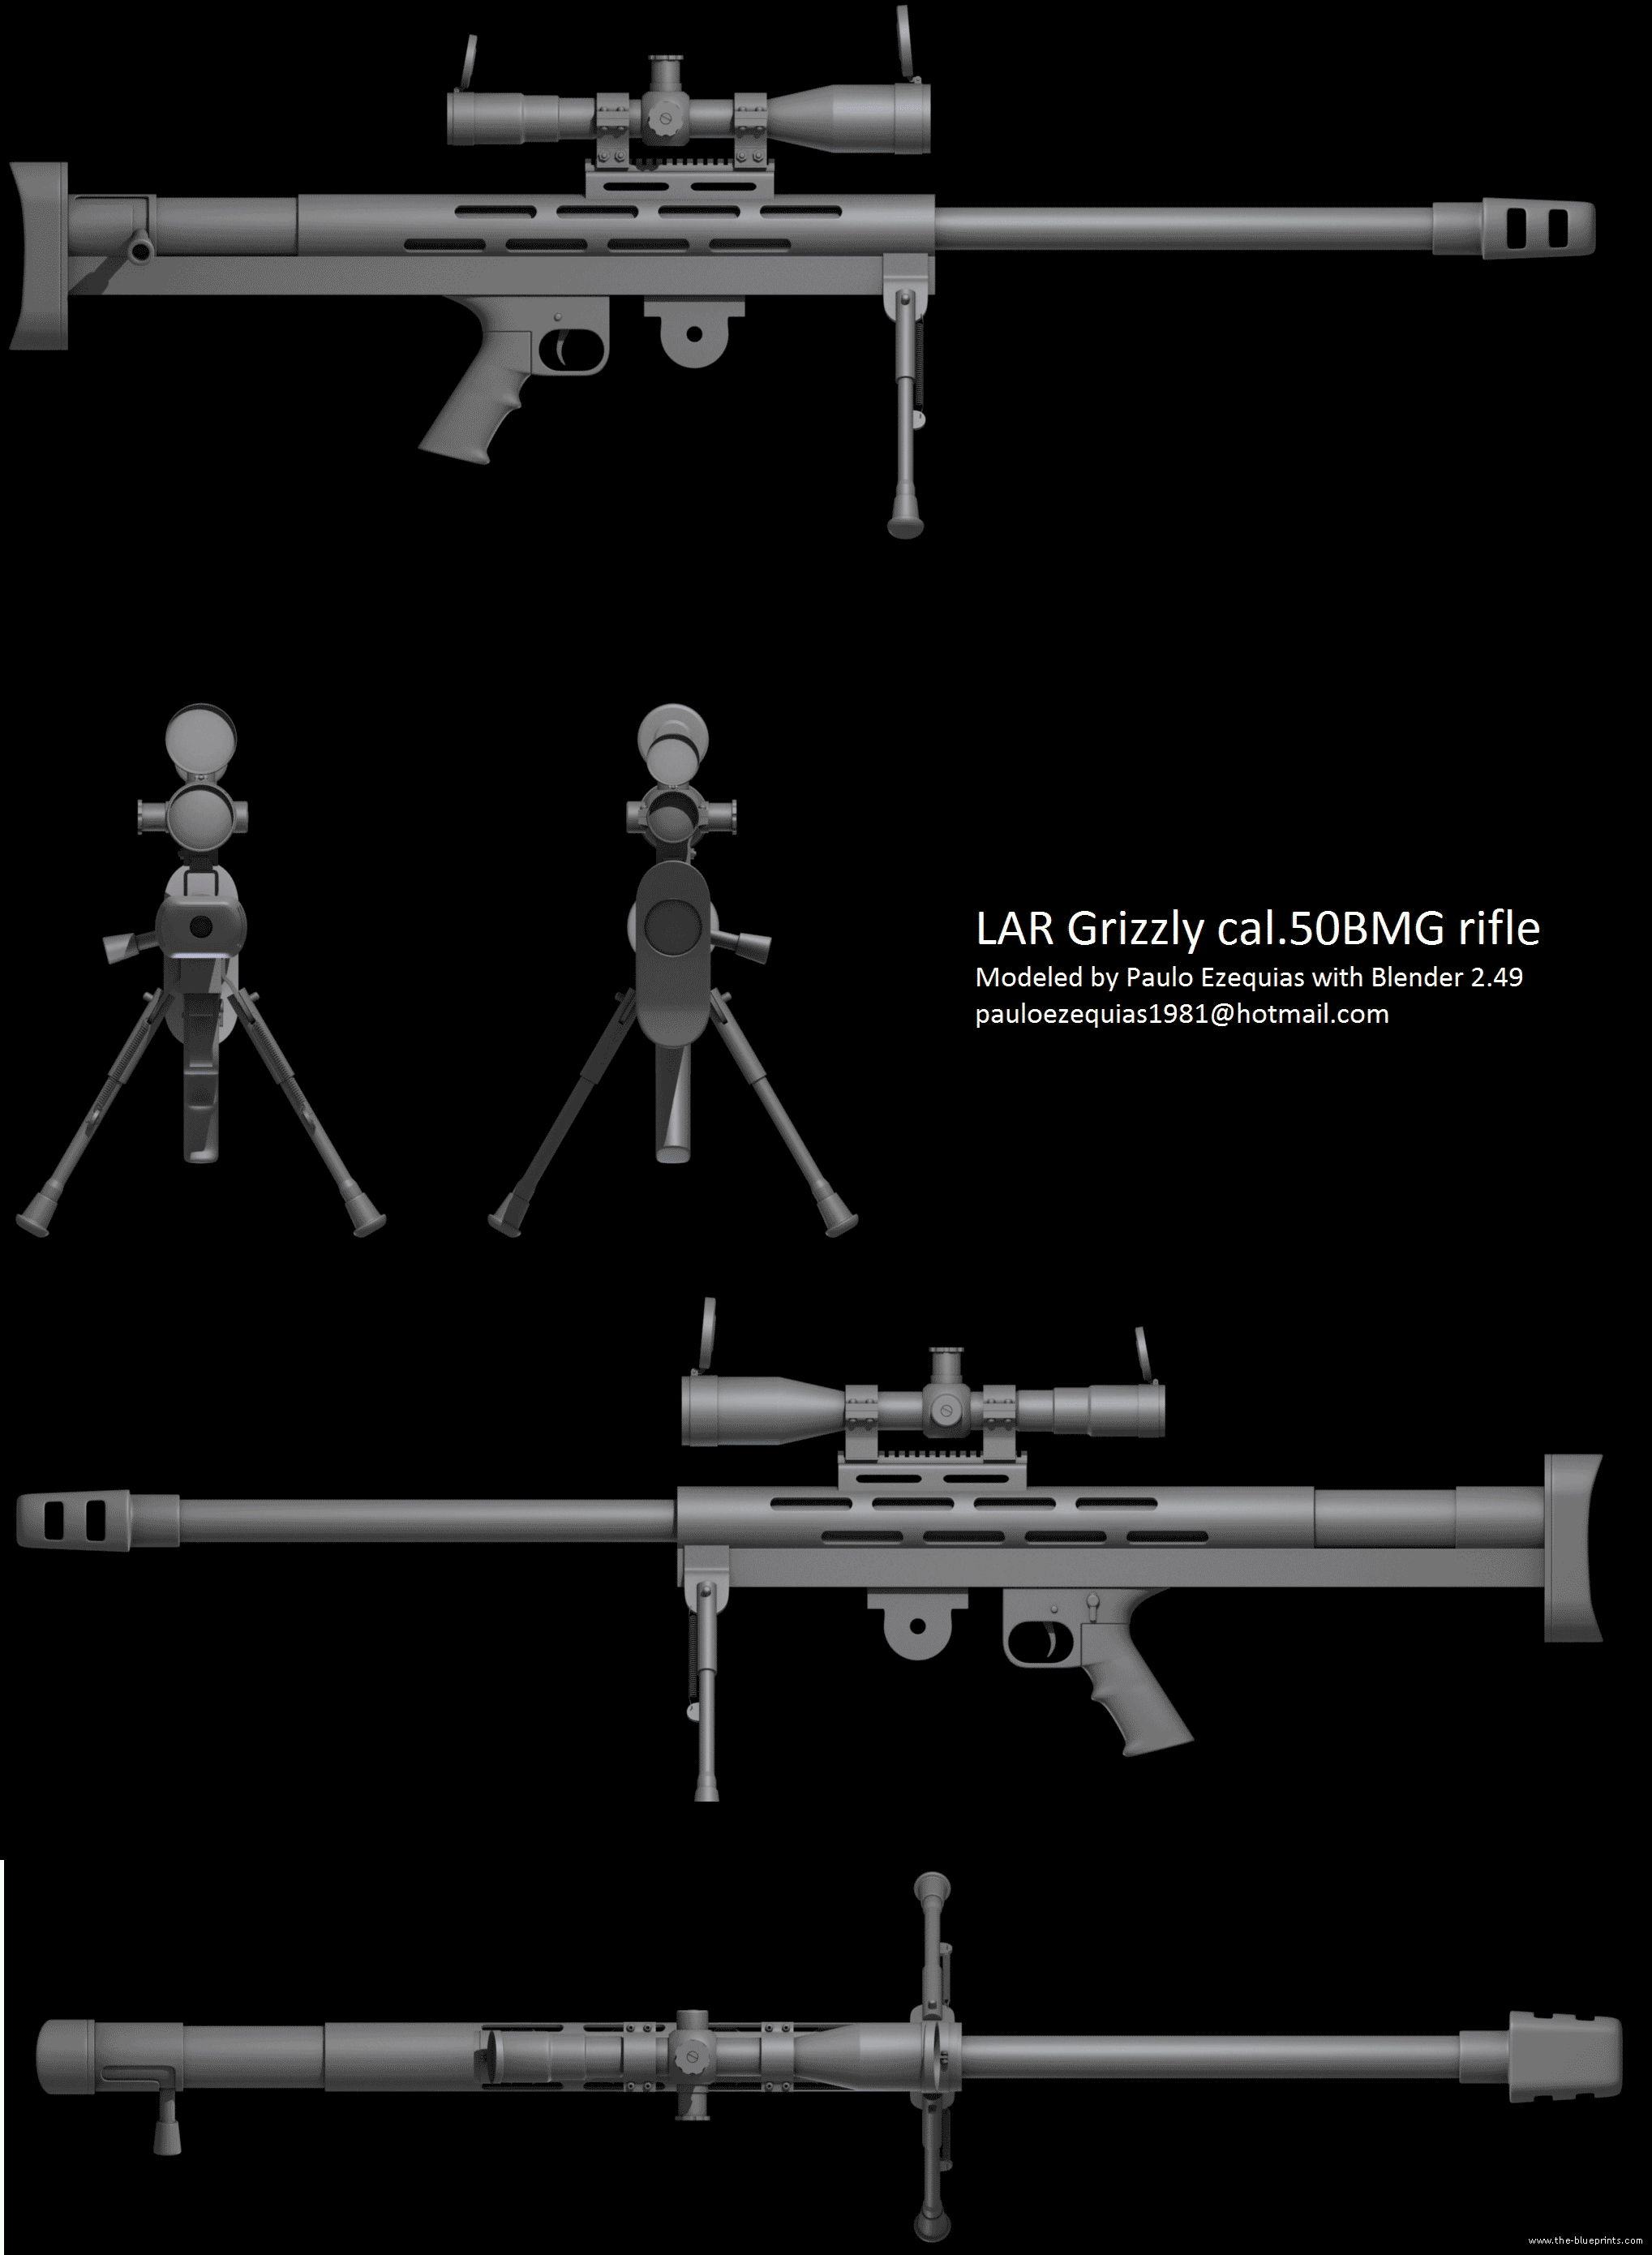 Blueprints Weapons Rifles Lar Grizzly 50bmg Rifle